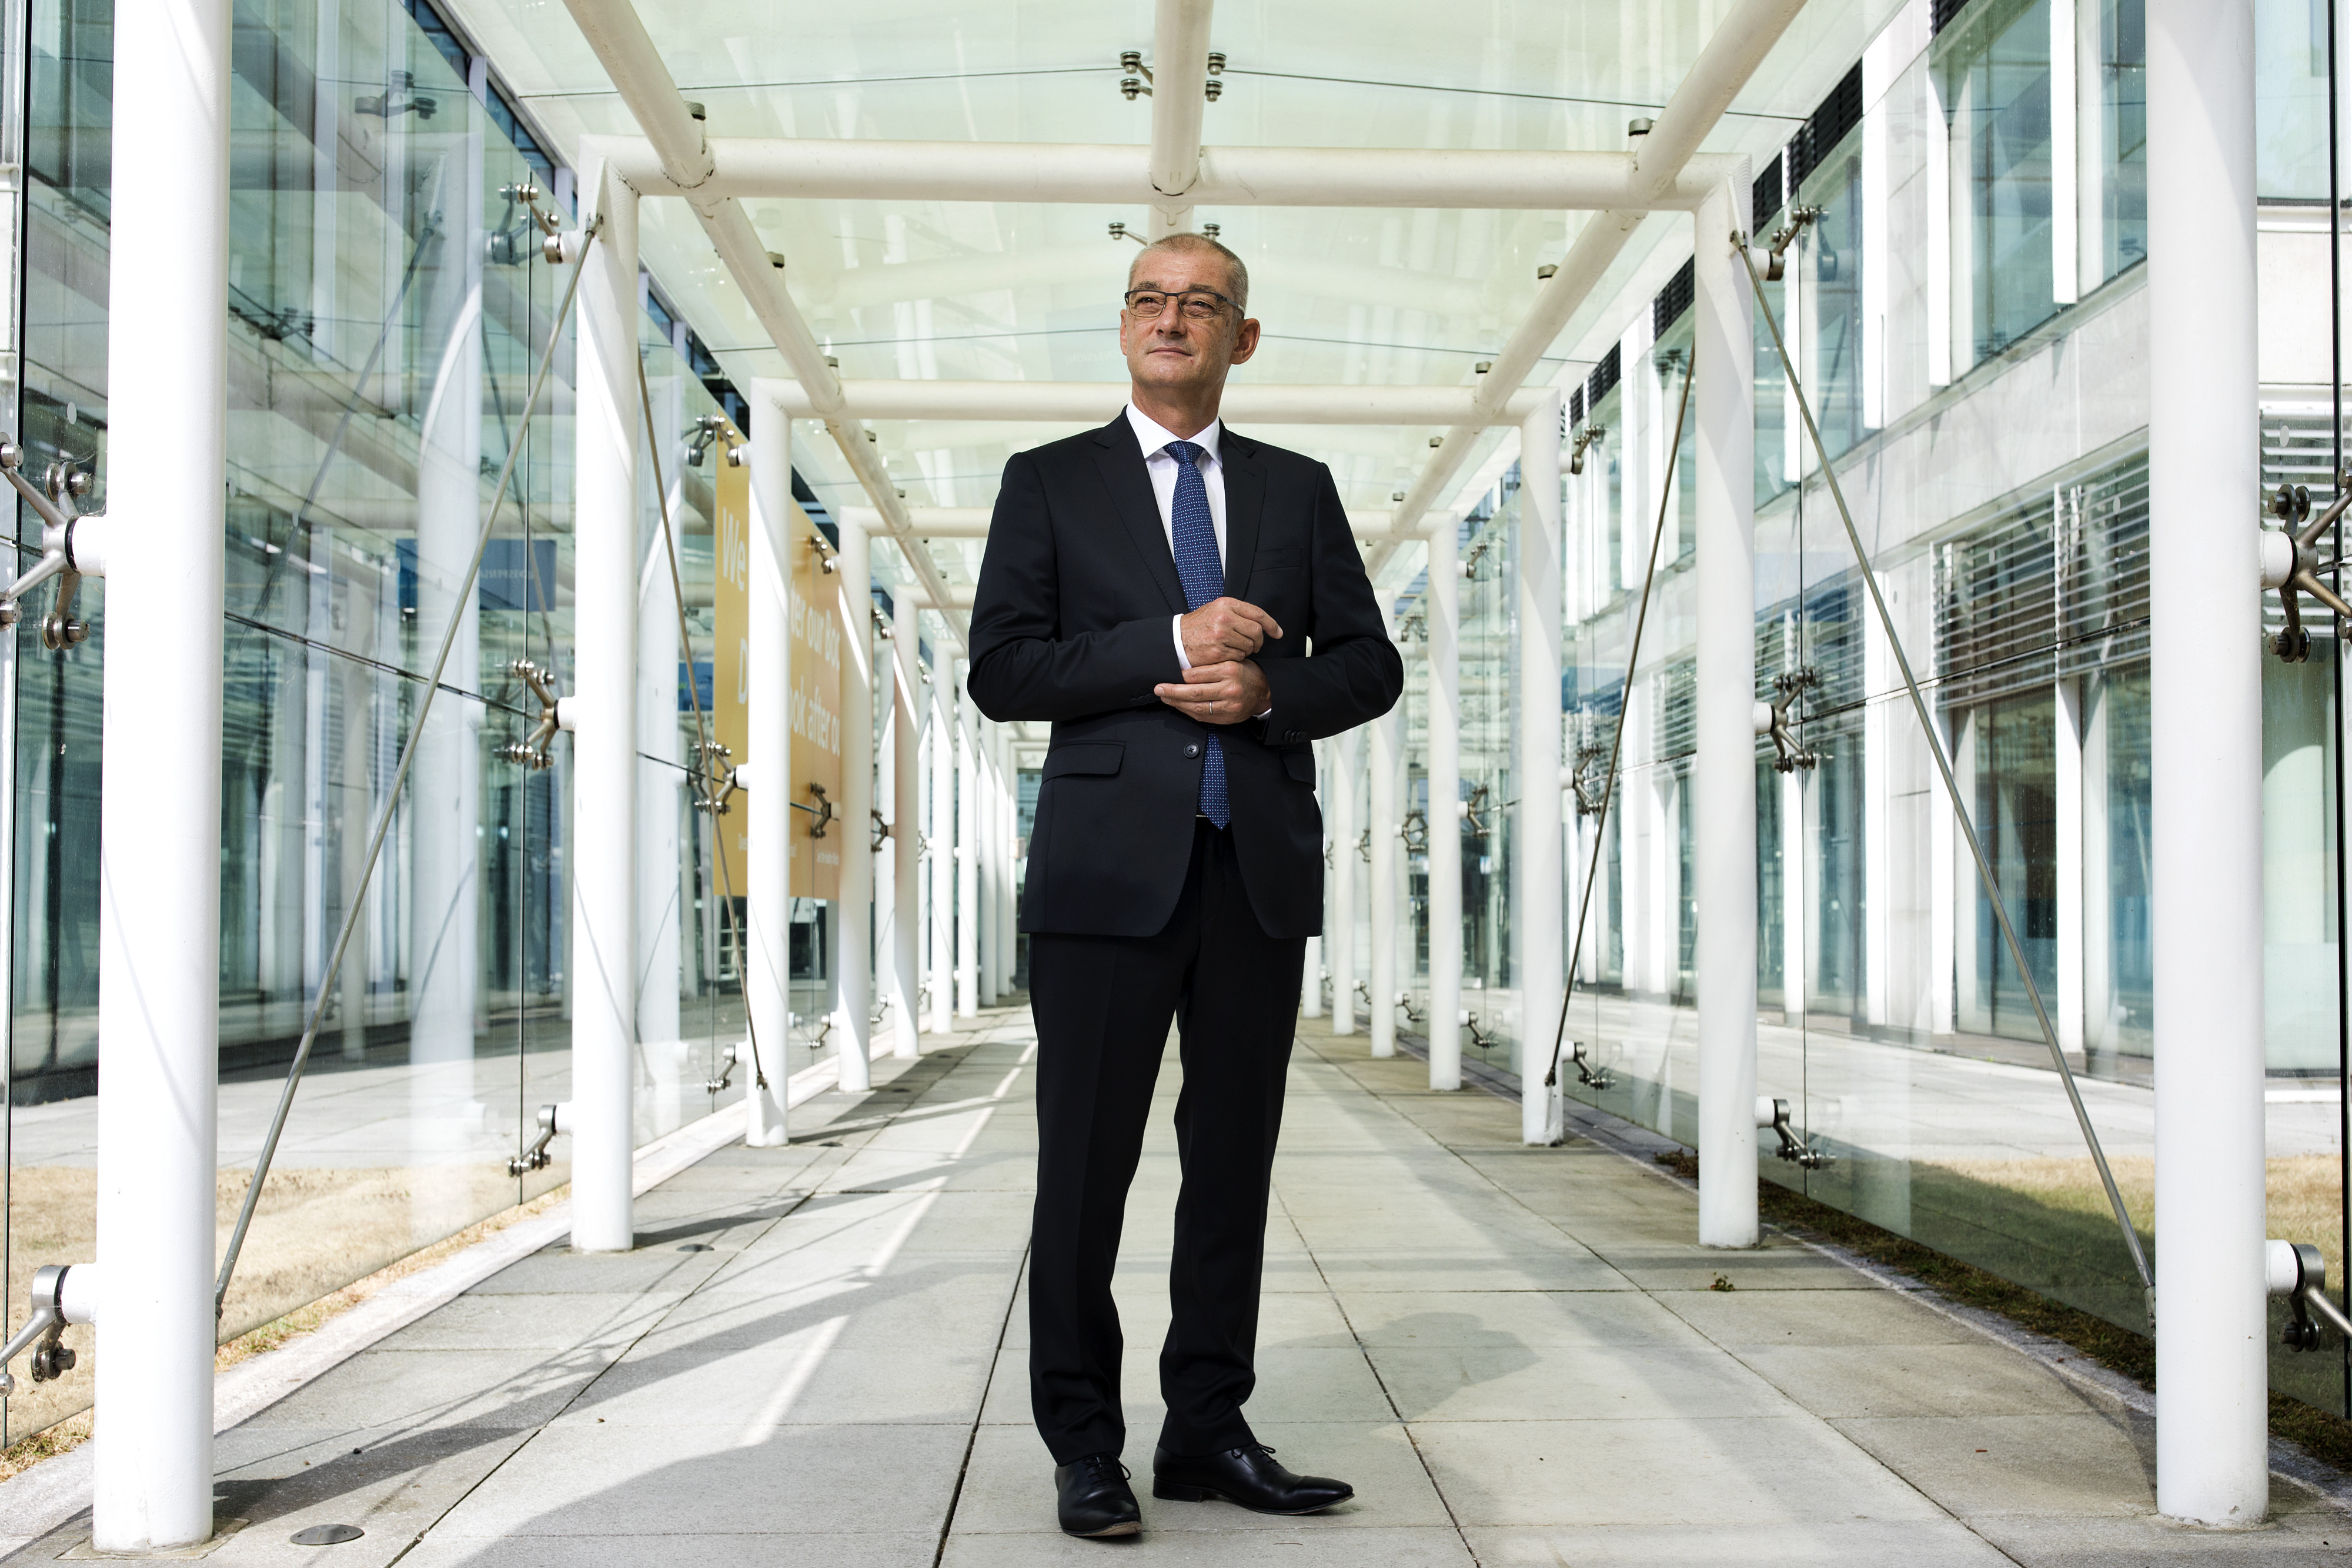 Loic Tassel, President of Europe for Procter & Gamble Co. poses for a photograph at the company offices in Weybridge, UK, on Wednesday, Jul. 25, 2018. Photographer: Simon Dawson/Procter & Gamble